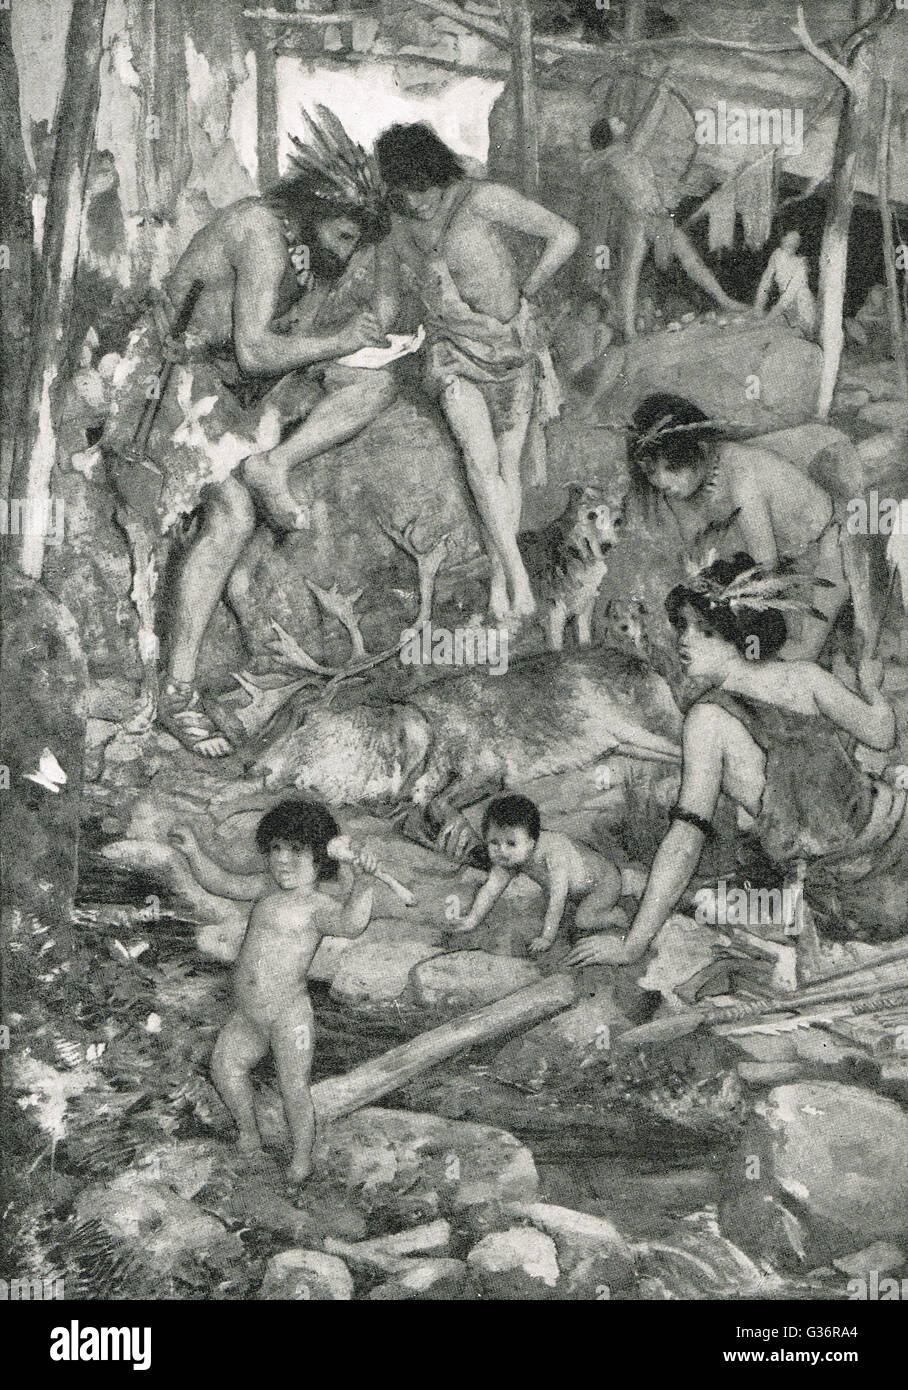 Prehistoric Cave People with Deer Kill - Stock Image